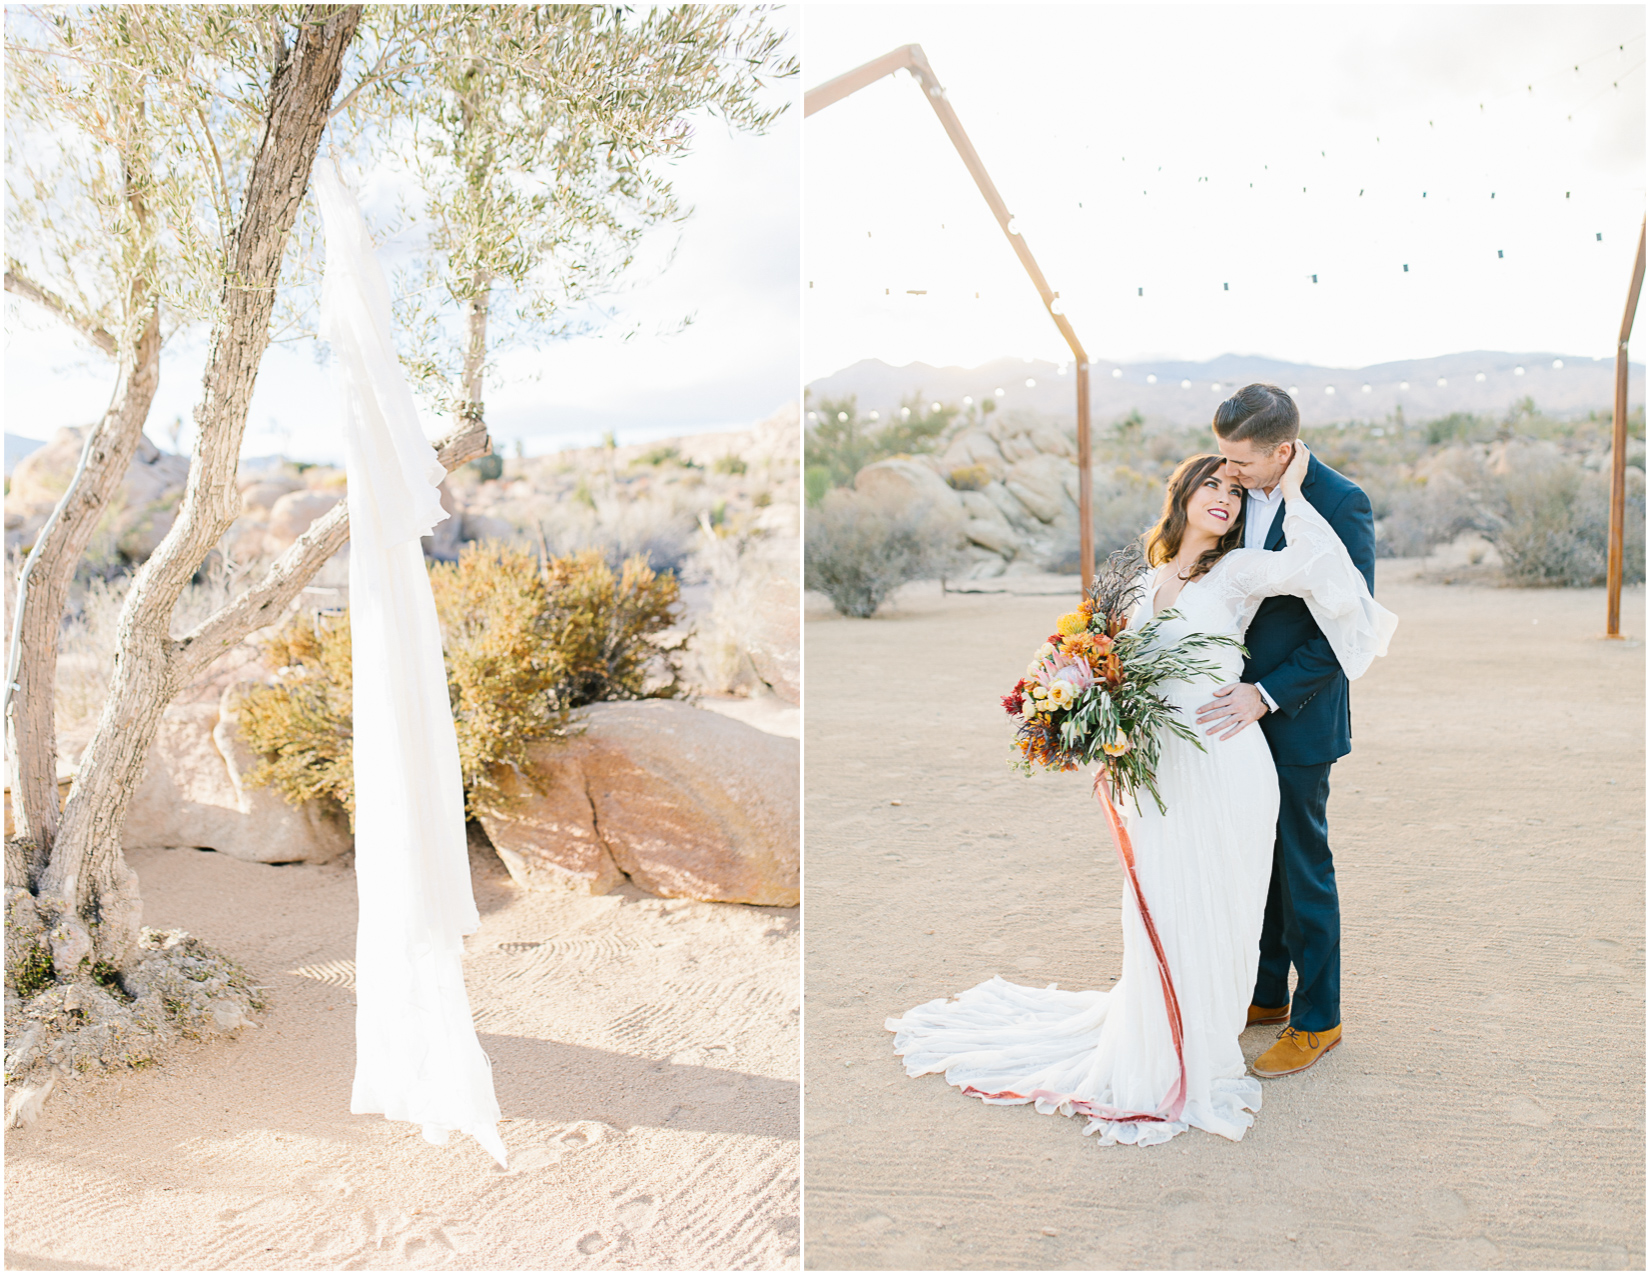 The Ruin Venue California   California Bride Inspiration   Fall Styled Shoot in the Desert   Epic Styled Shoot   Southern California Wedding Photographer   The Dress Theory